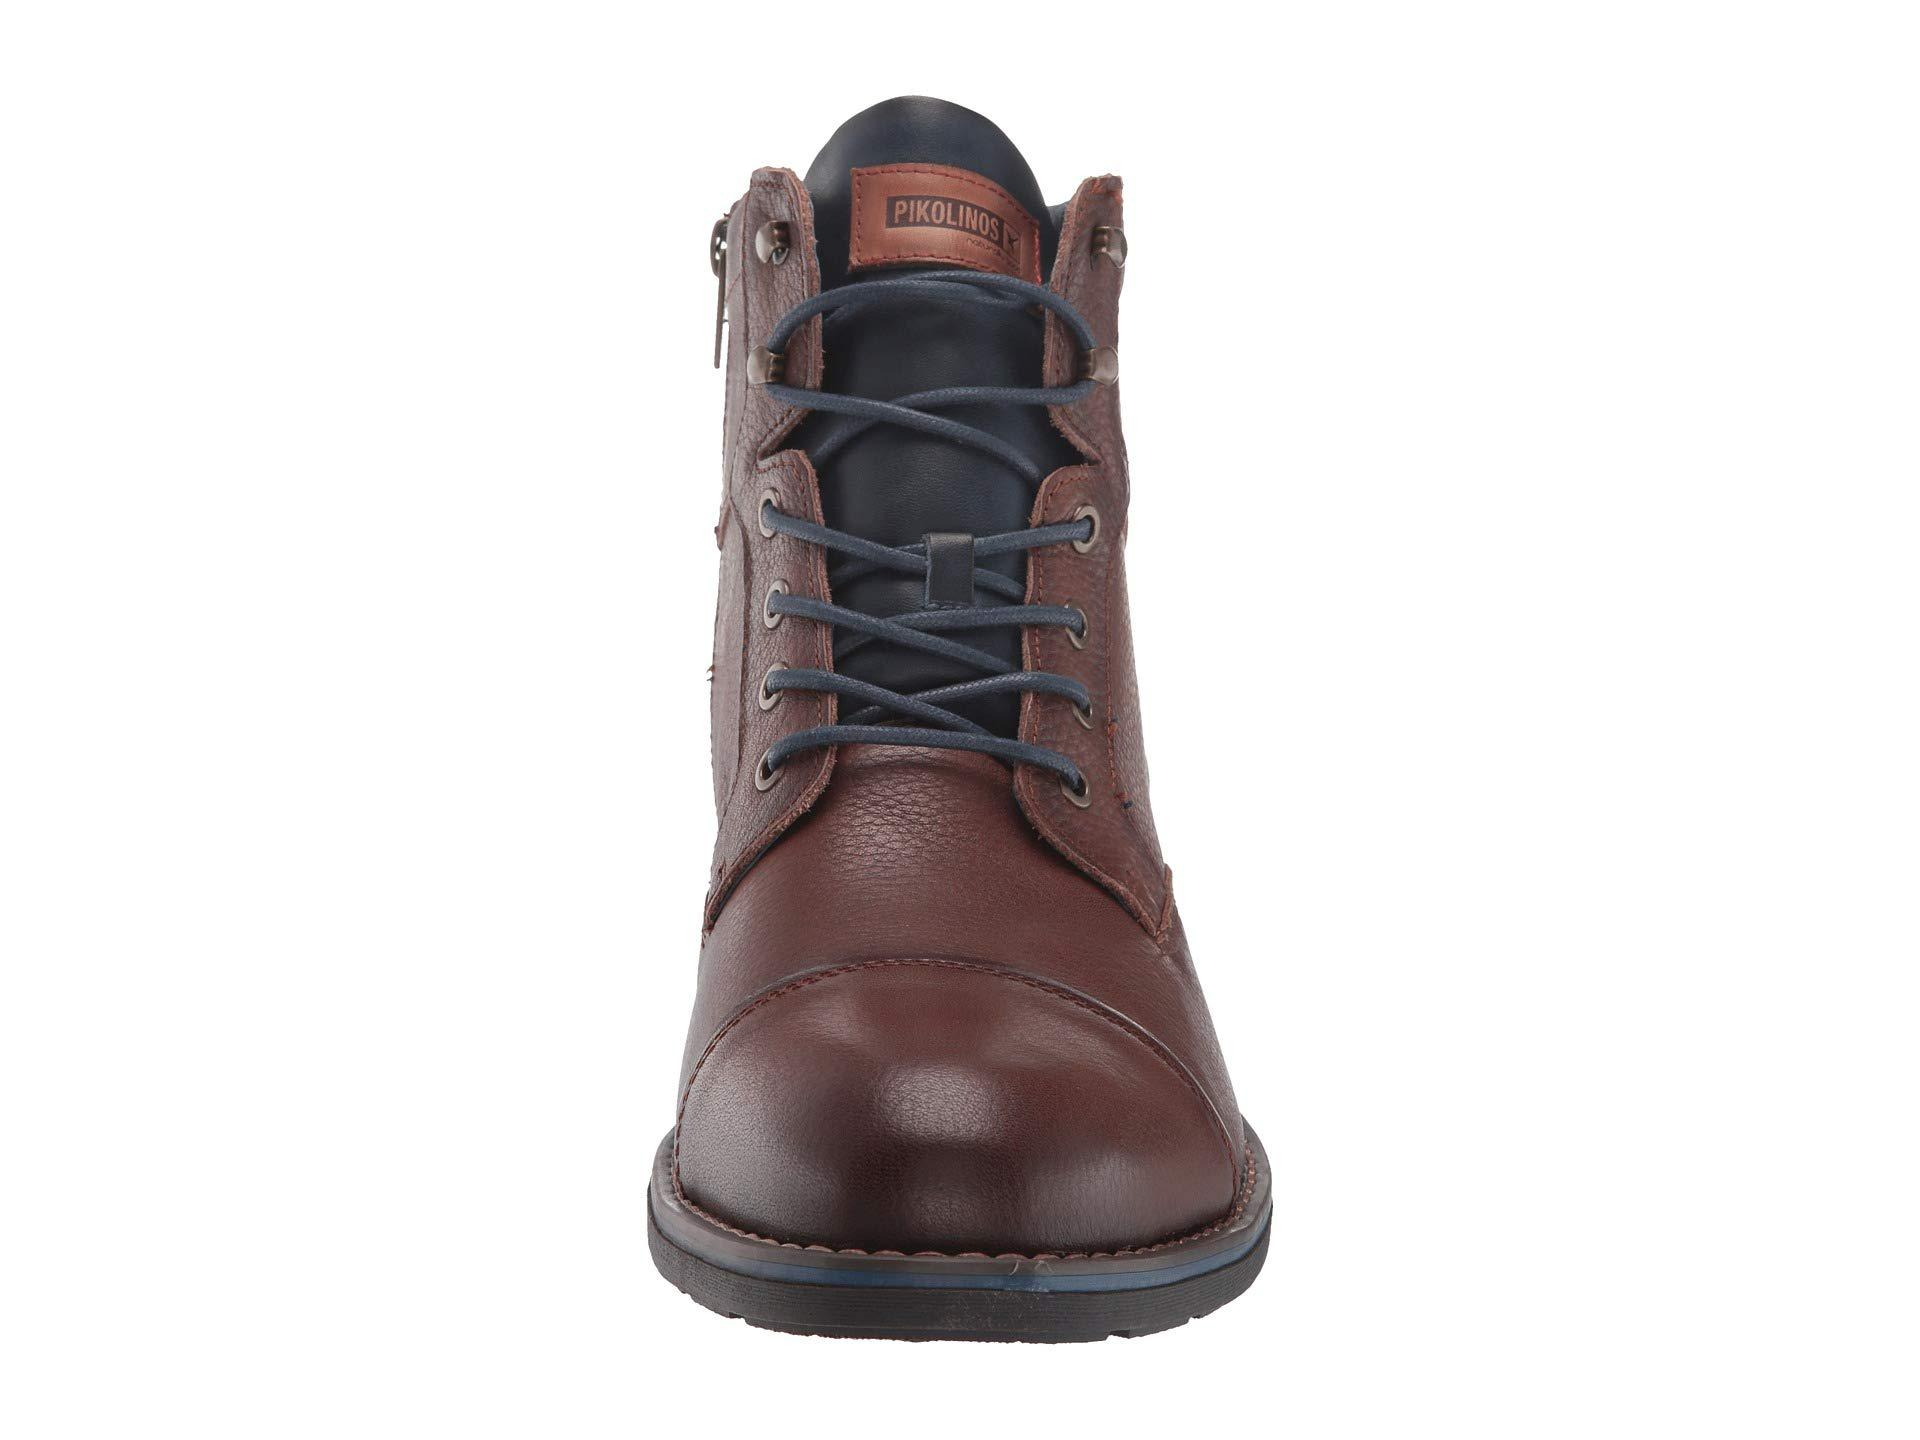 8c99ae86b6a3c Pikolinos York 8170ng (cuero) Men's Shoes in Brown for Men - Lyst